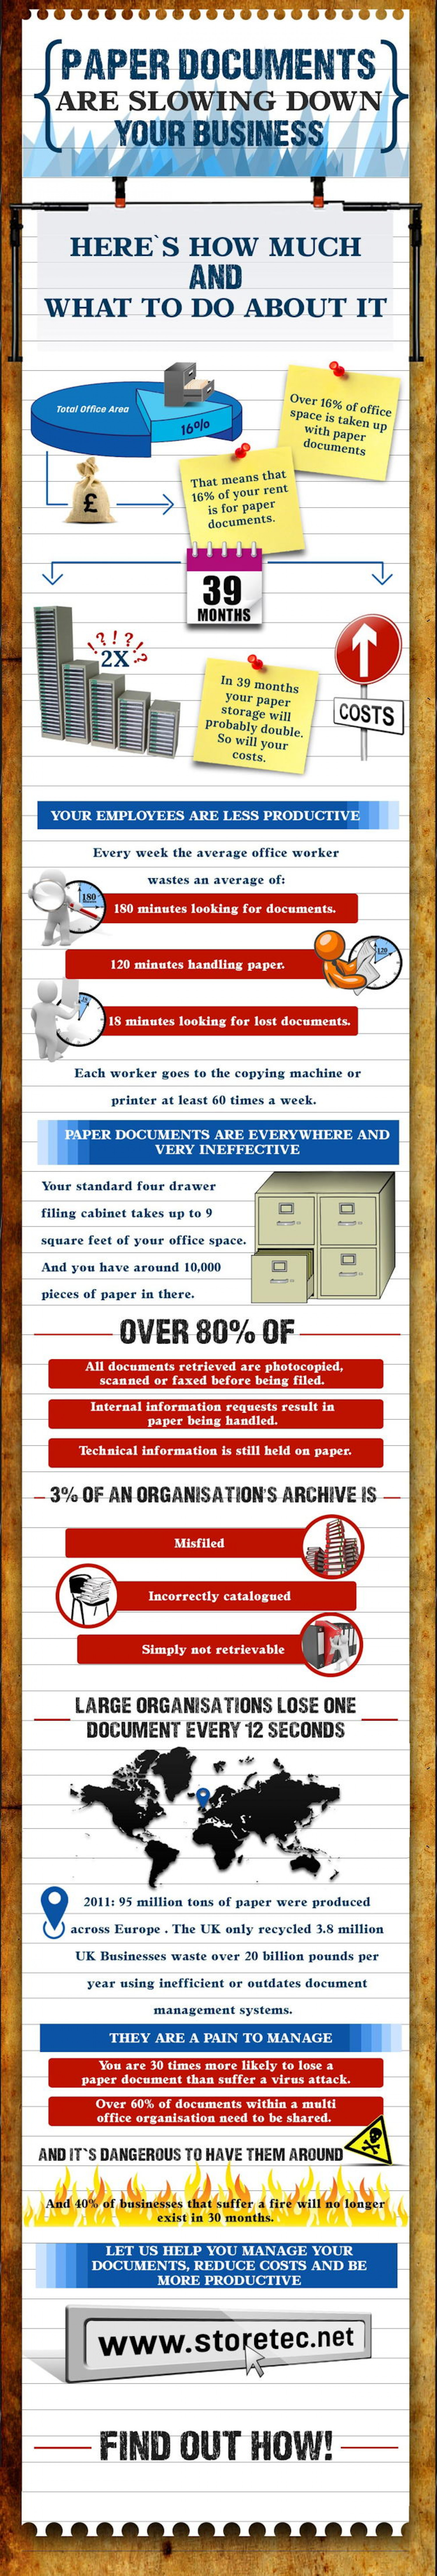 Paper Documents Are Slowing Down Your Business Infographic